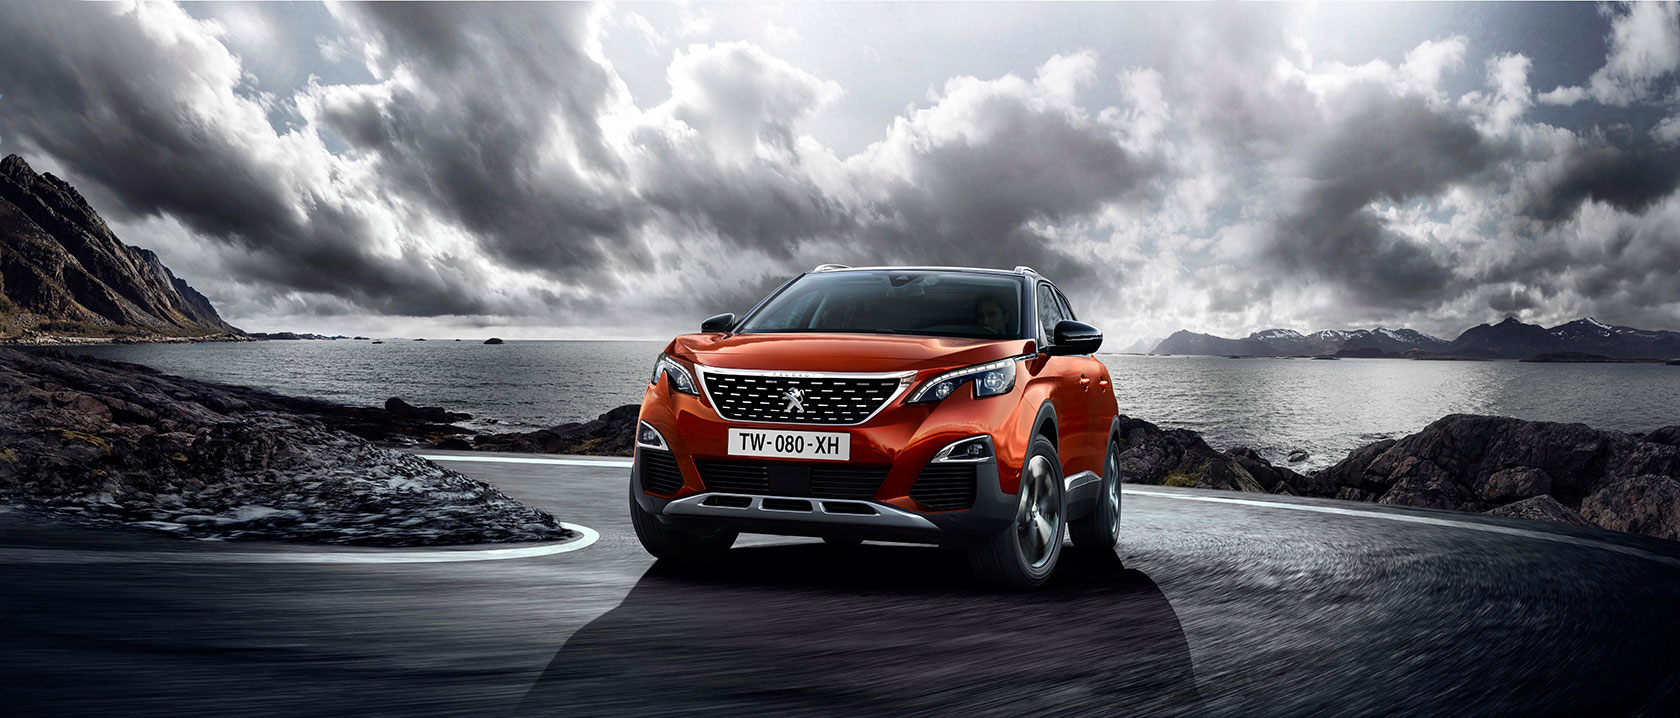 Le Peugeot 3008 élue Car of the Year 2017